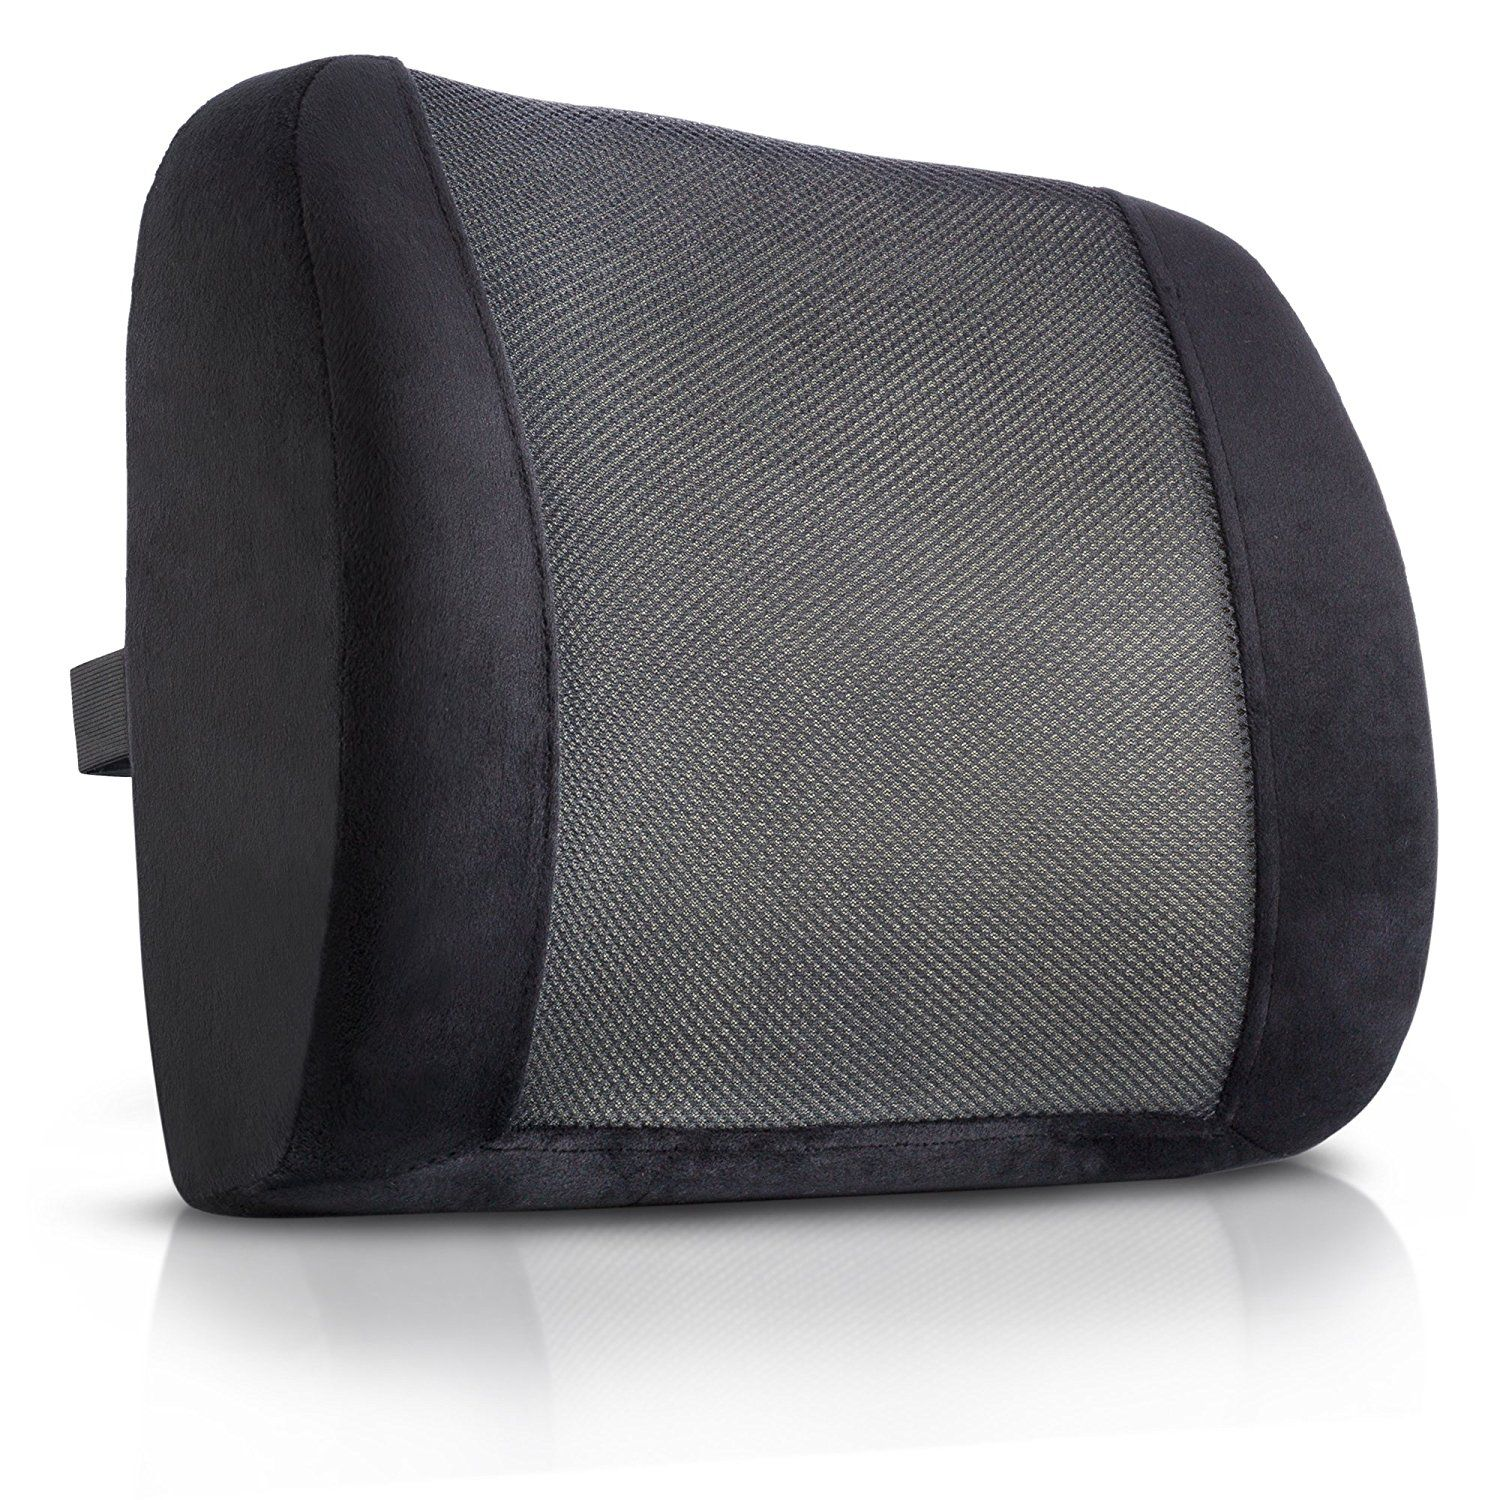 Back support pillows driving car is ideal for driving